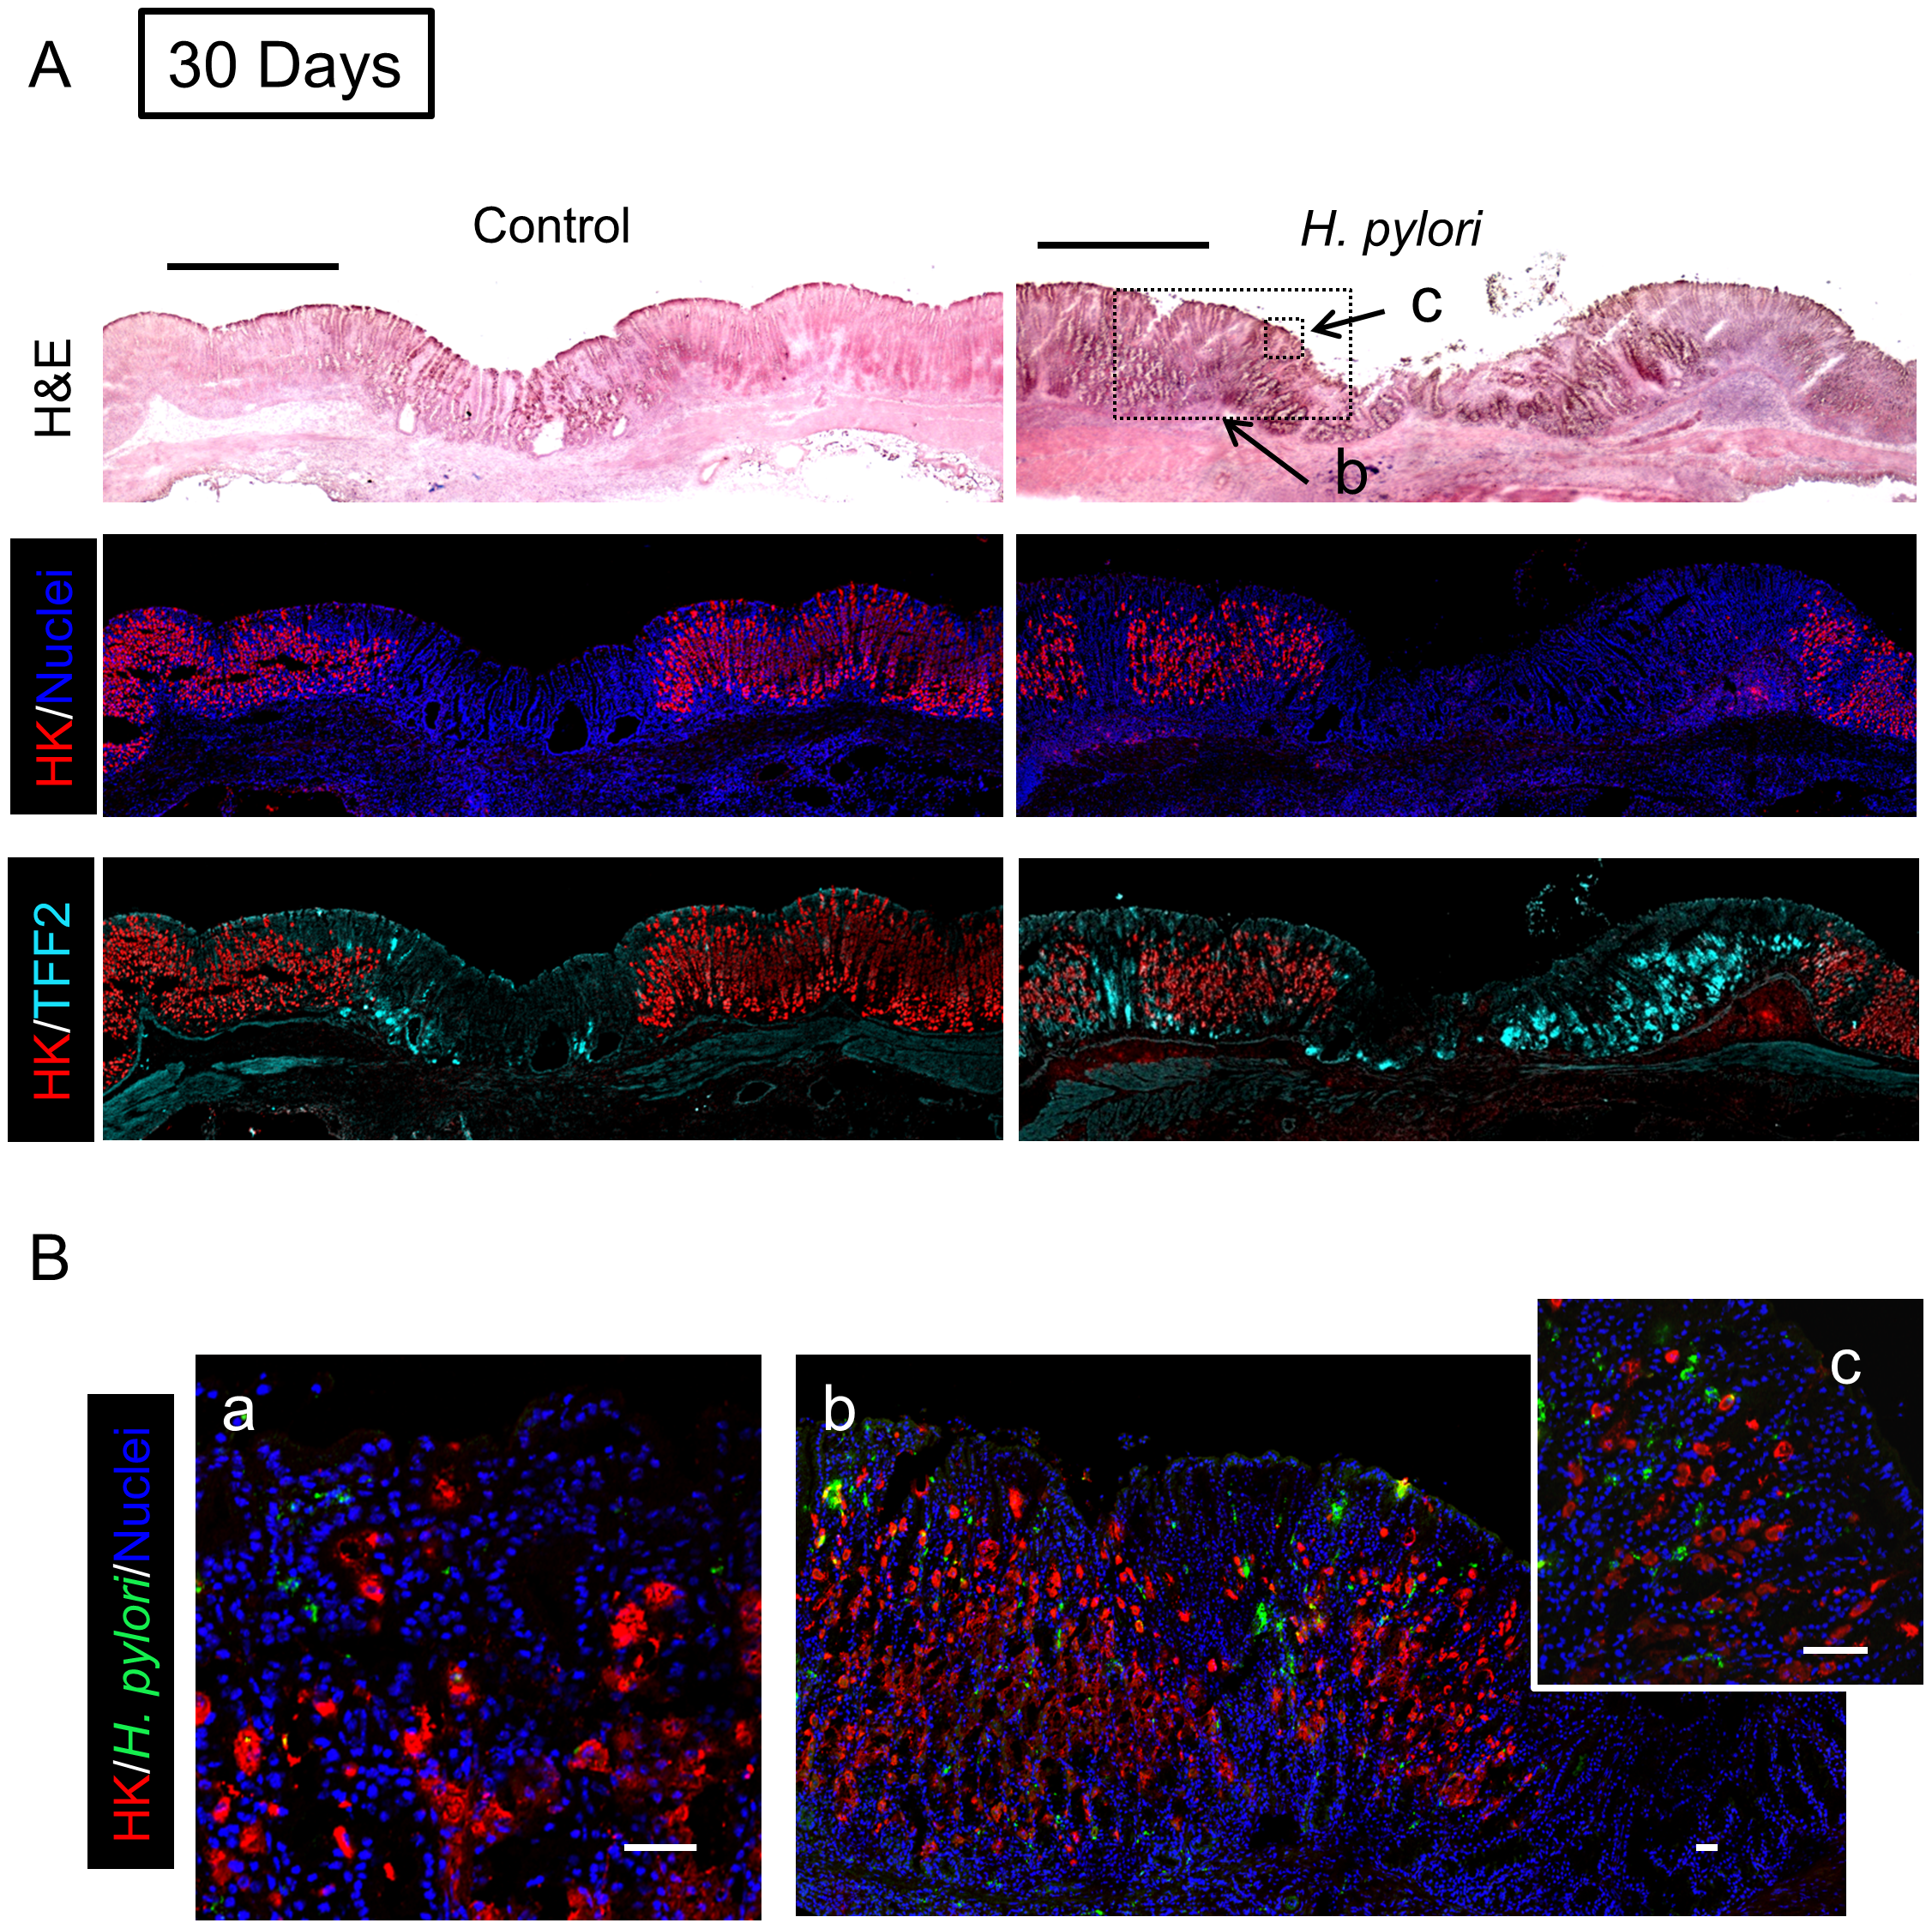 Morphology of gastric ulcerated tissue 30 days after <i>H. pylori</i> inoculation.